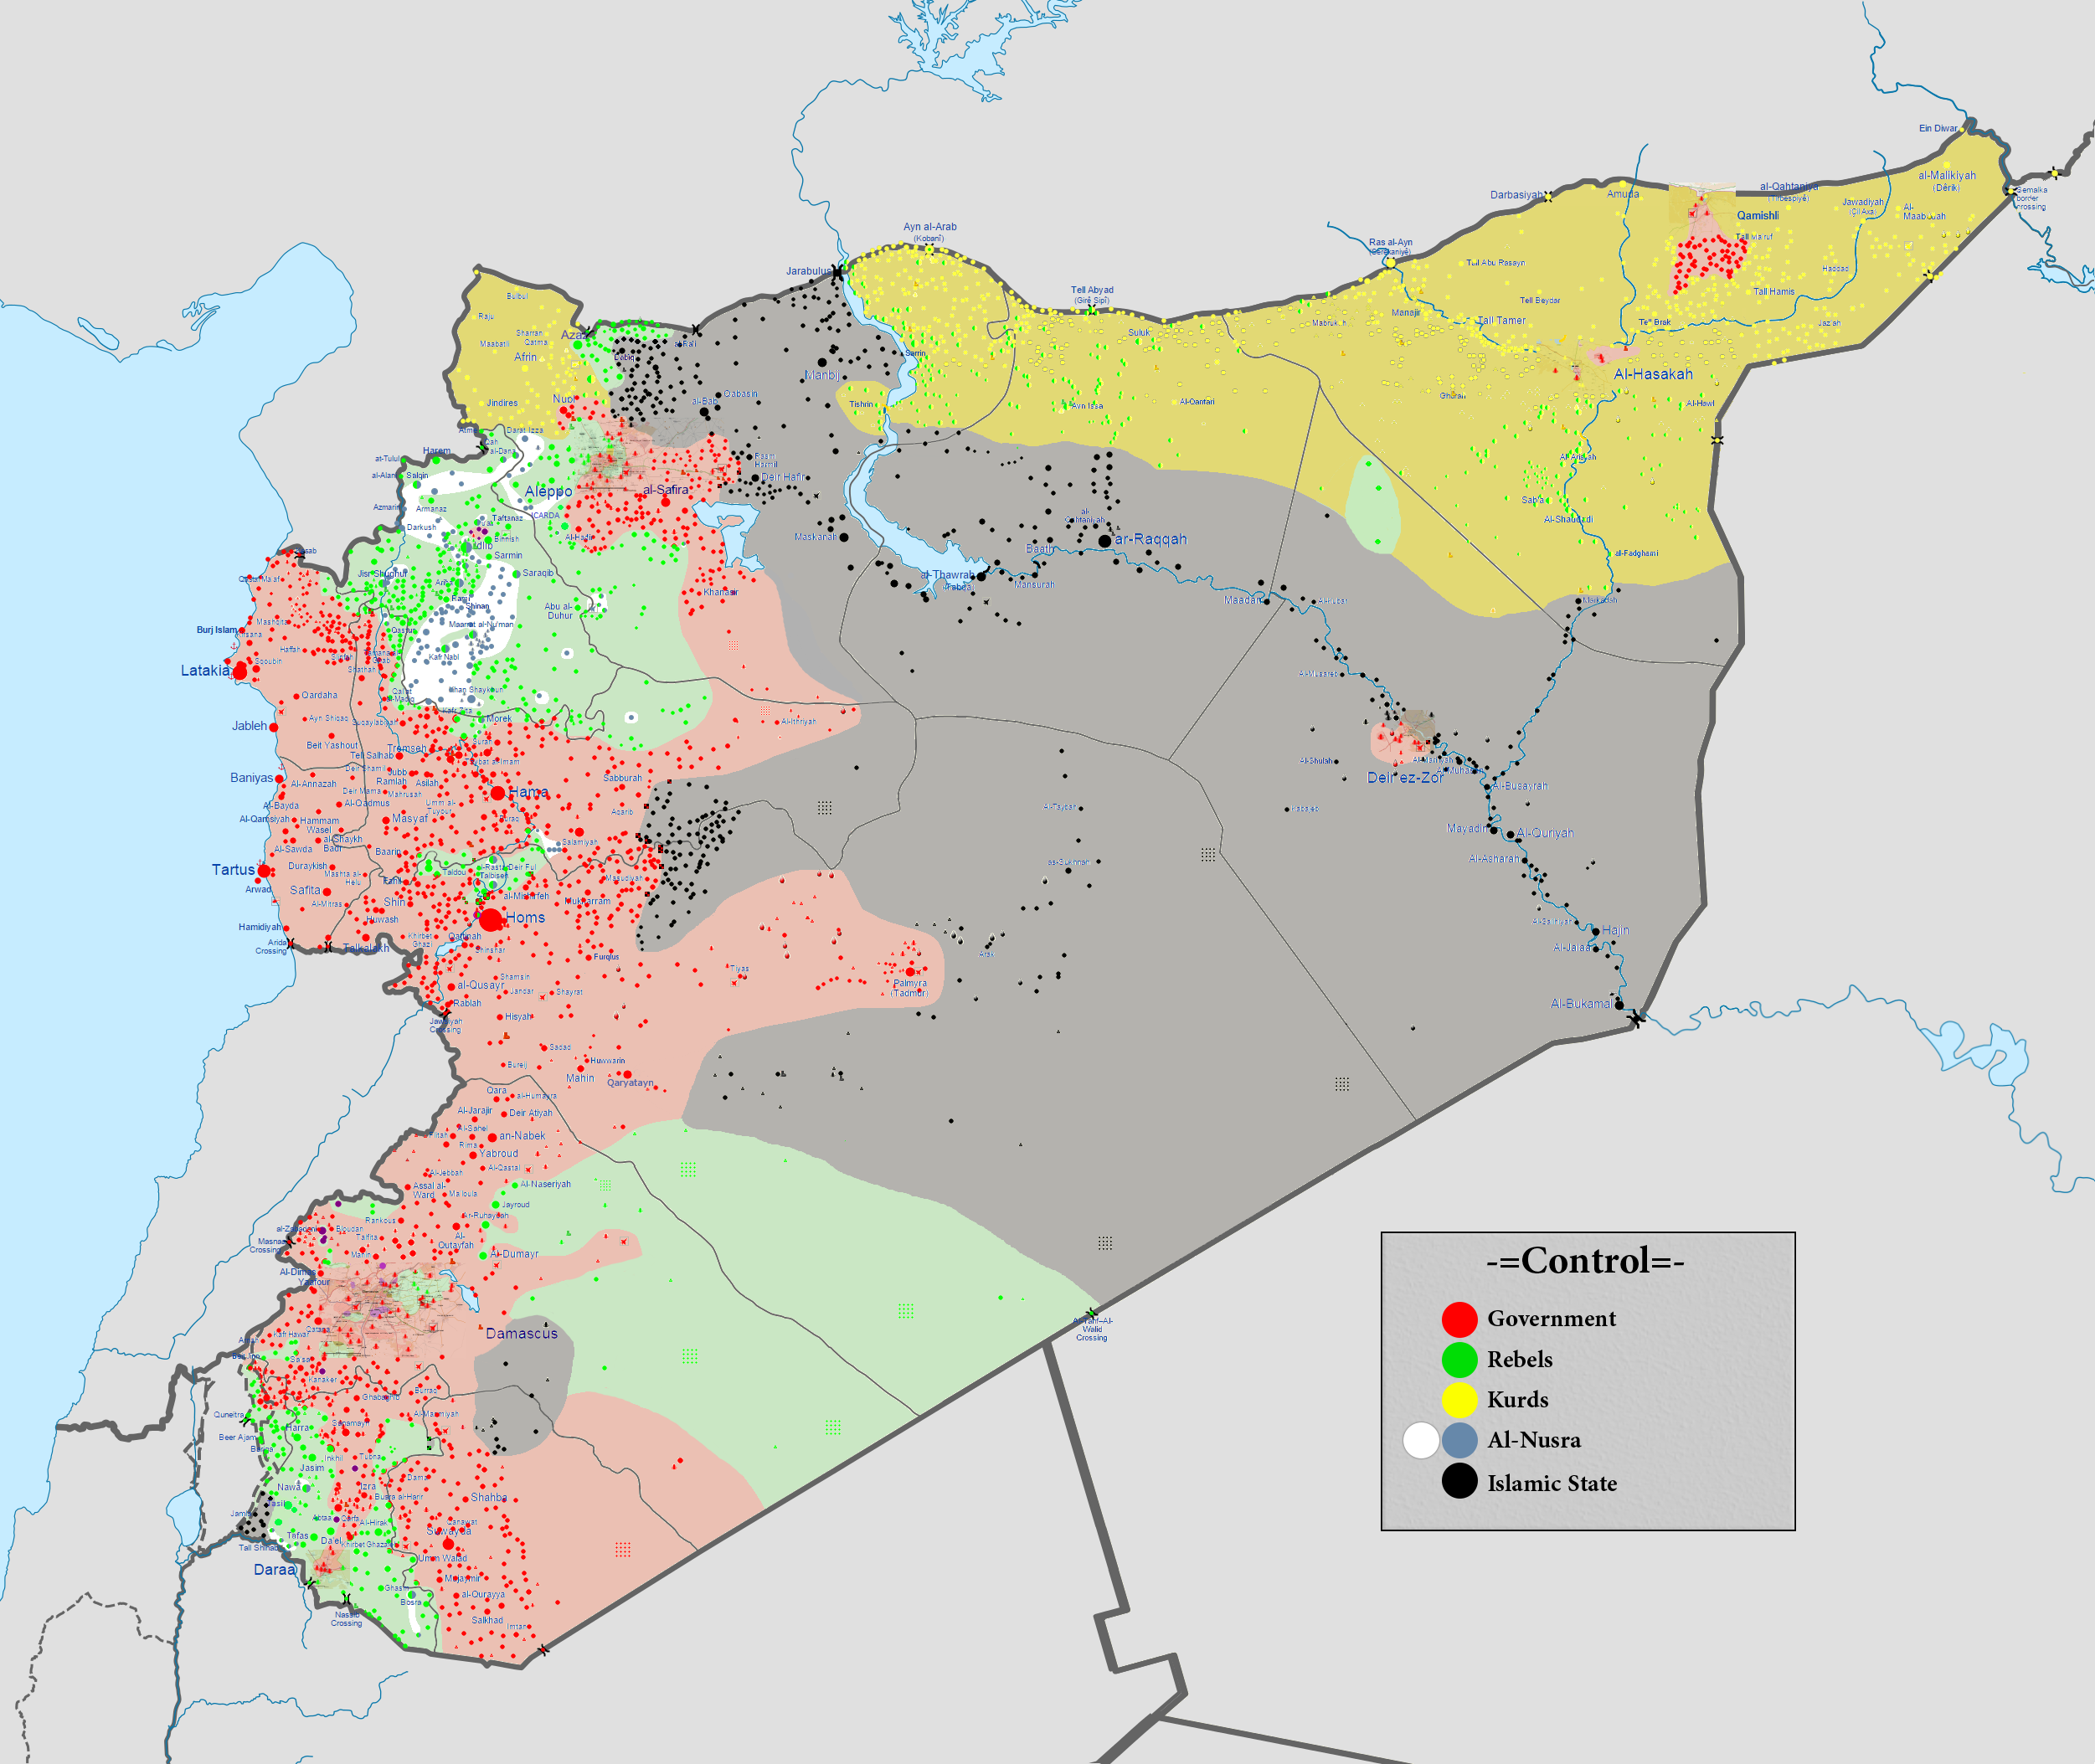 file syrian civil war wikimedia mons